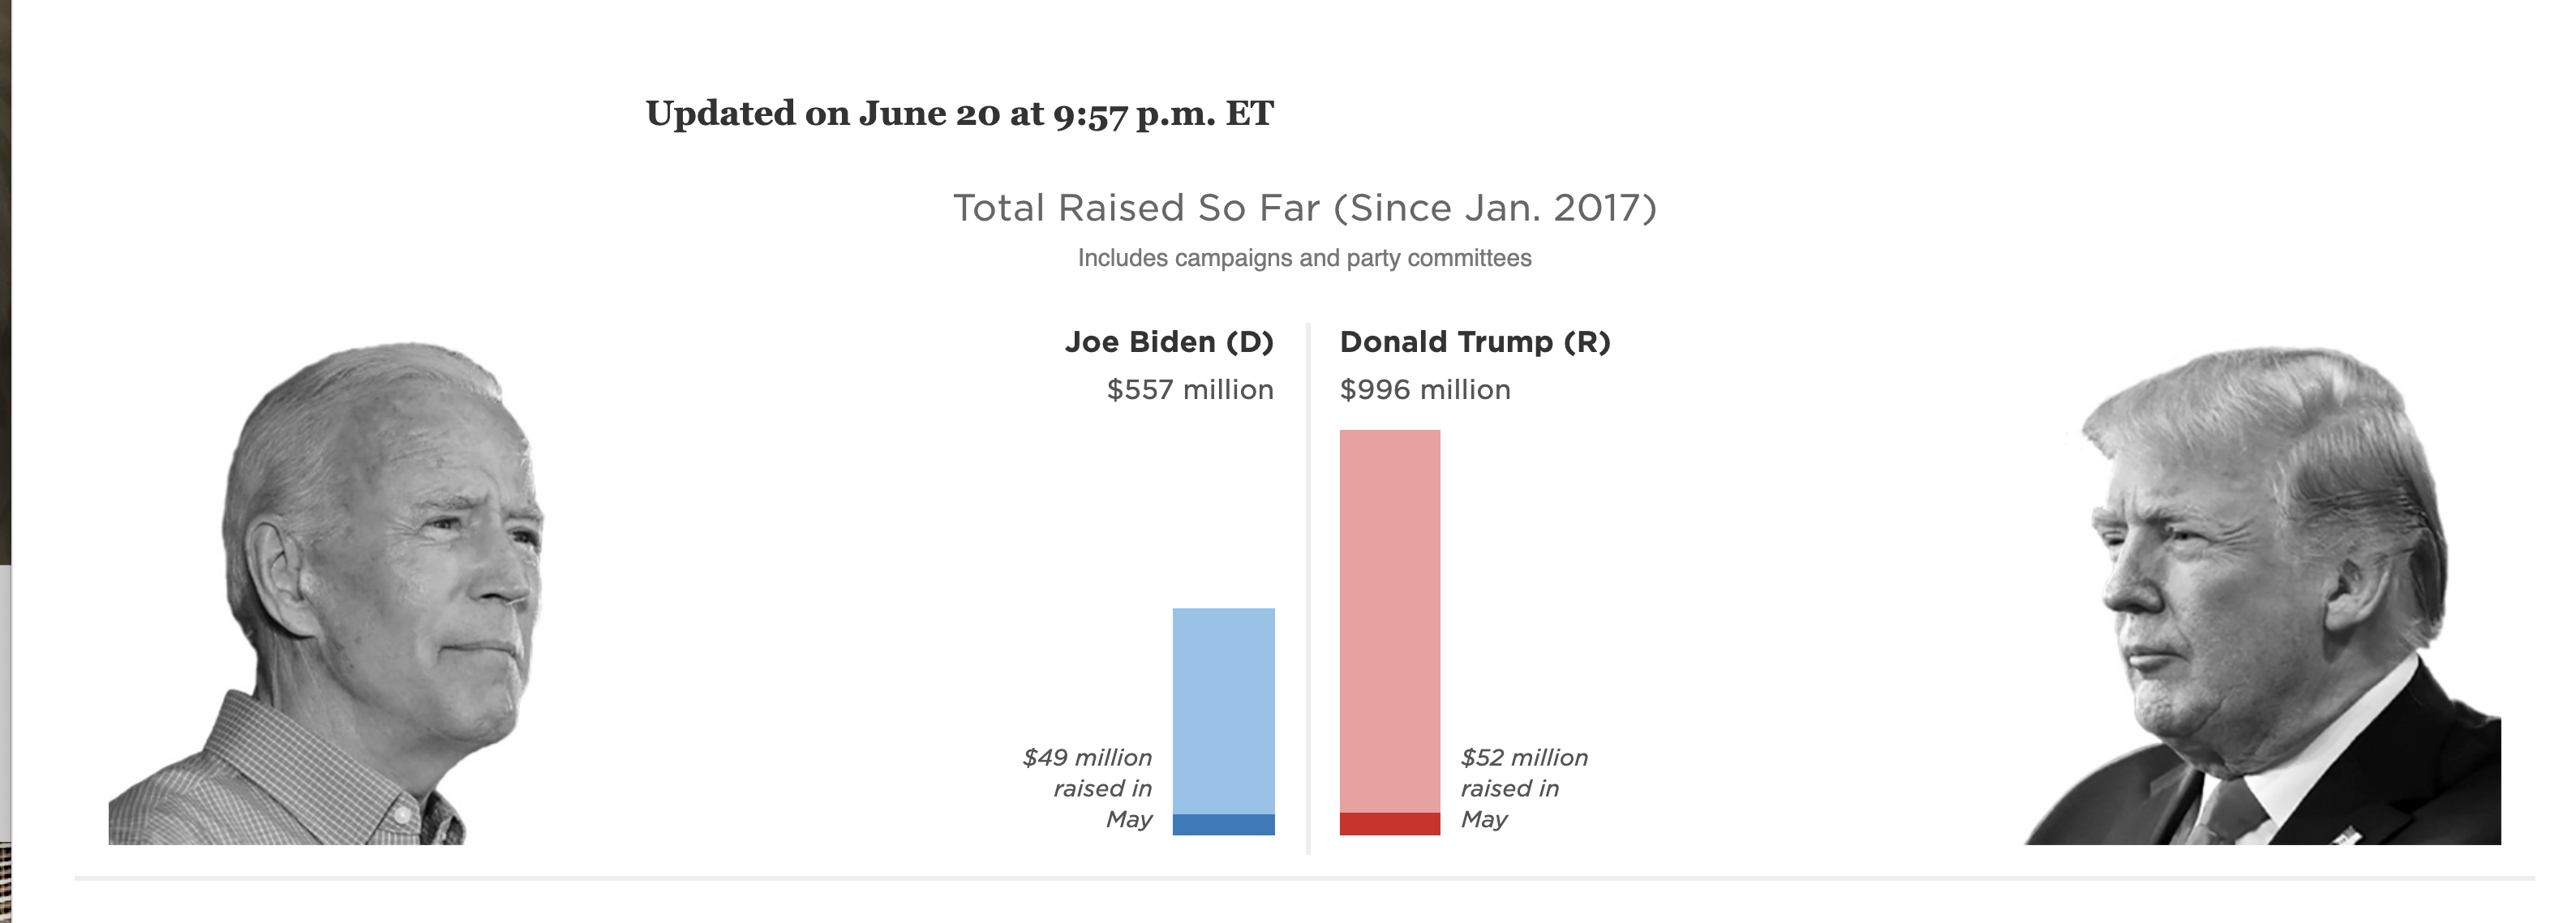 Screen-Shot-2020-06-22-at-8.22.32-AM New 2020 Fundraising Totals Confirm Accelerating Blue Wave Corruption Election 2020 Featured Politics Top Stories